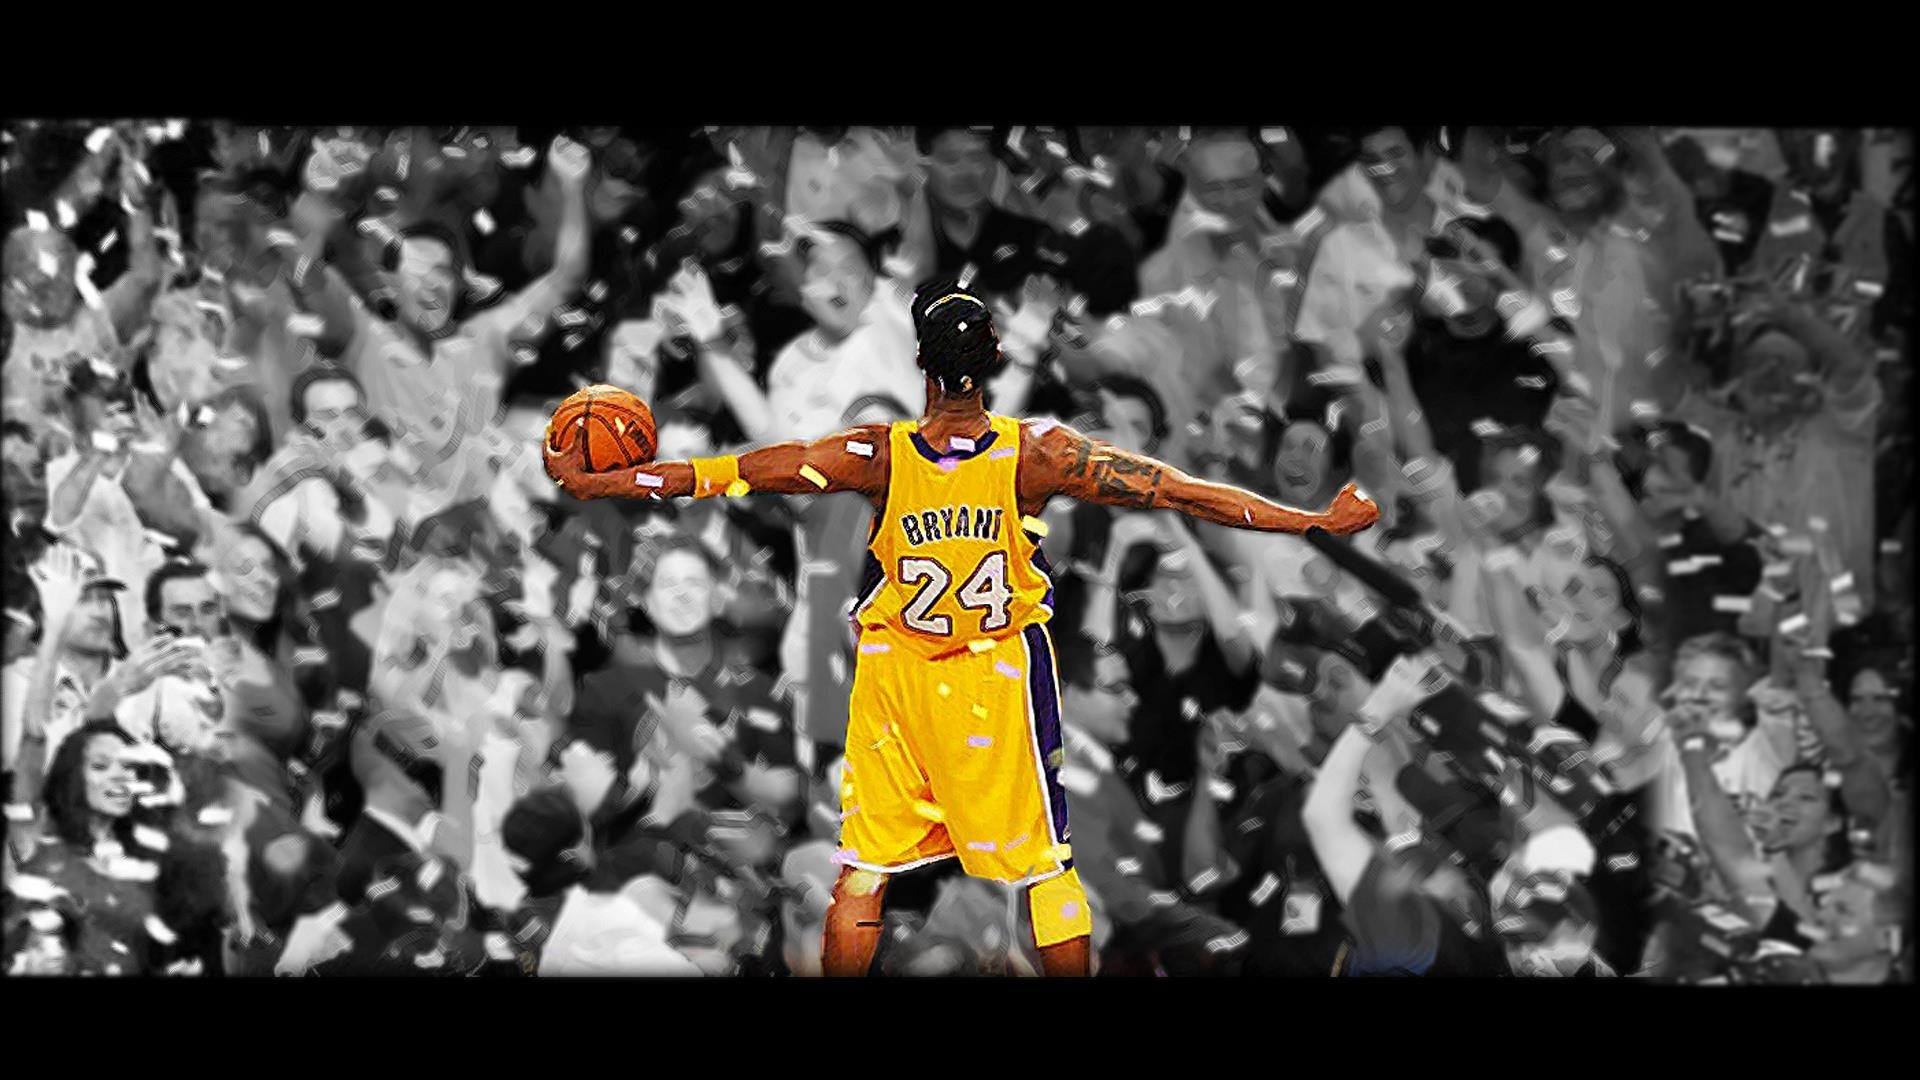 kobe bryant image ~ desktop wallpaper box